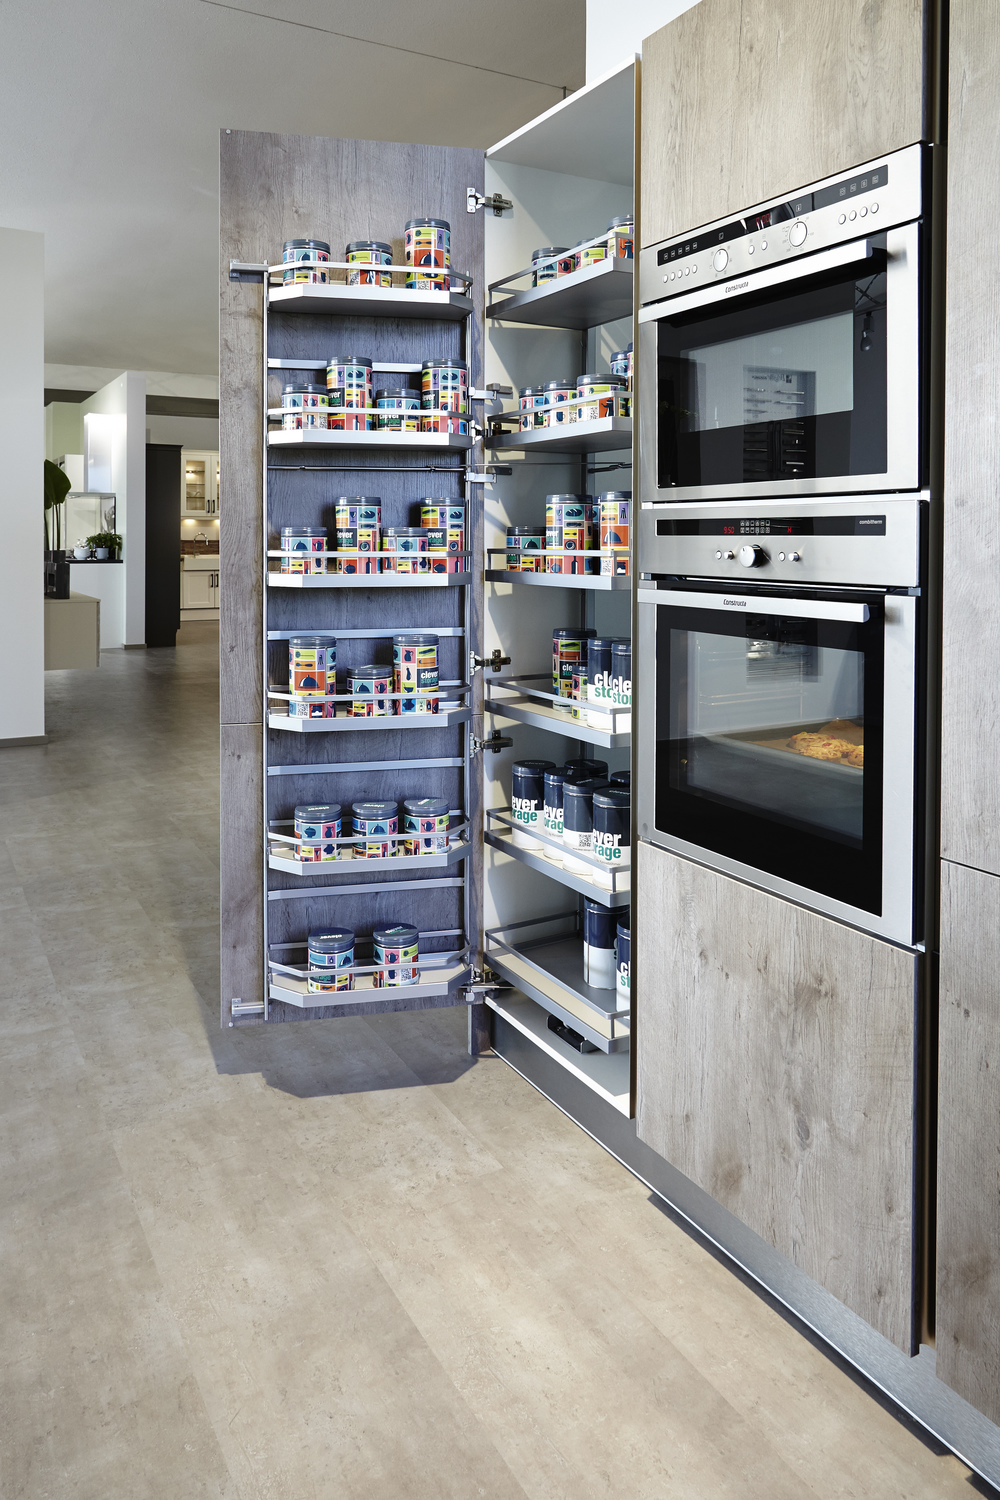 Clever Design Features That Maximize Your Kitchen Storage: Clever Storage By Kesseböhmer